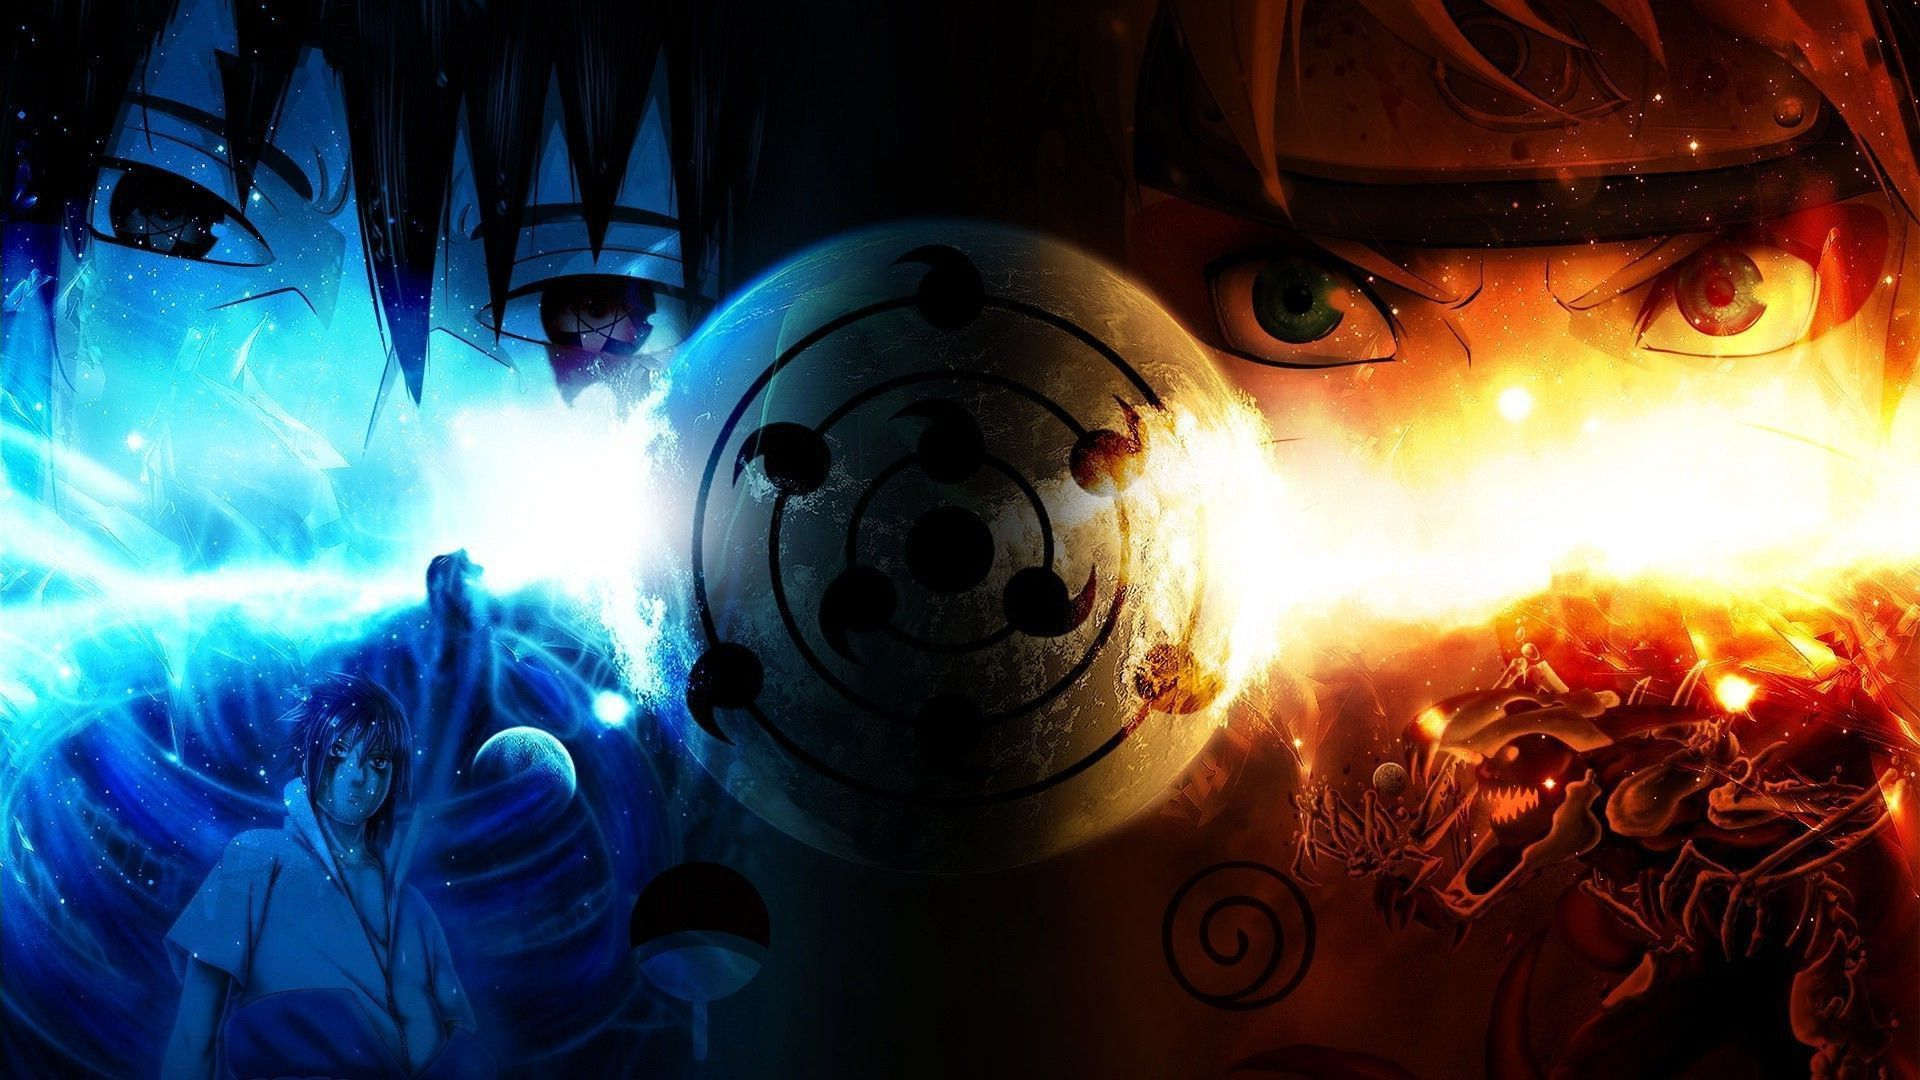 Naruto Fire And Ice Hd Anime Wallpaper Desktop Wallpapers 4k High Definition Windows 10 Anime Wallpaper 1920x1080 Hd Anime Wallpapers Anime Wallpaper Download